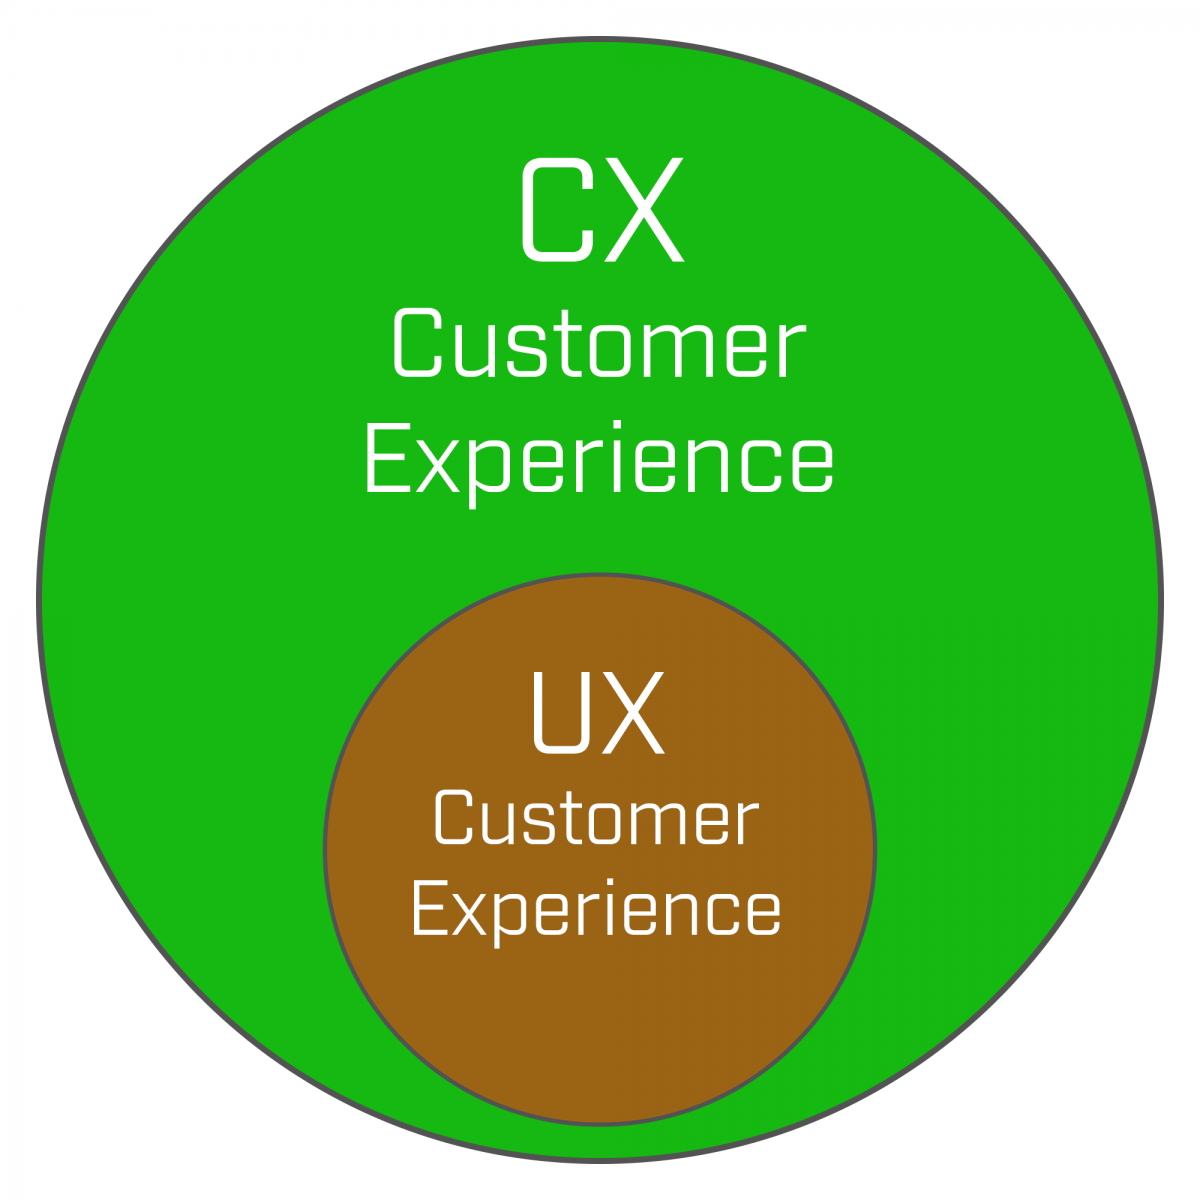 CX and UX